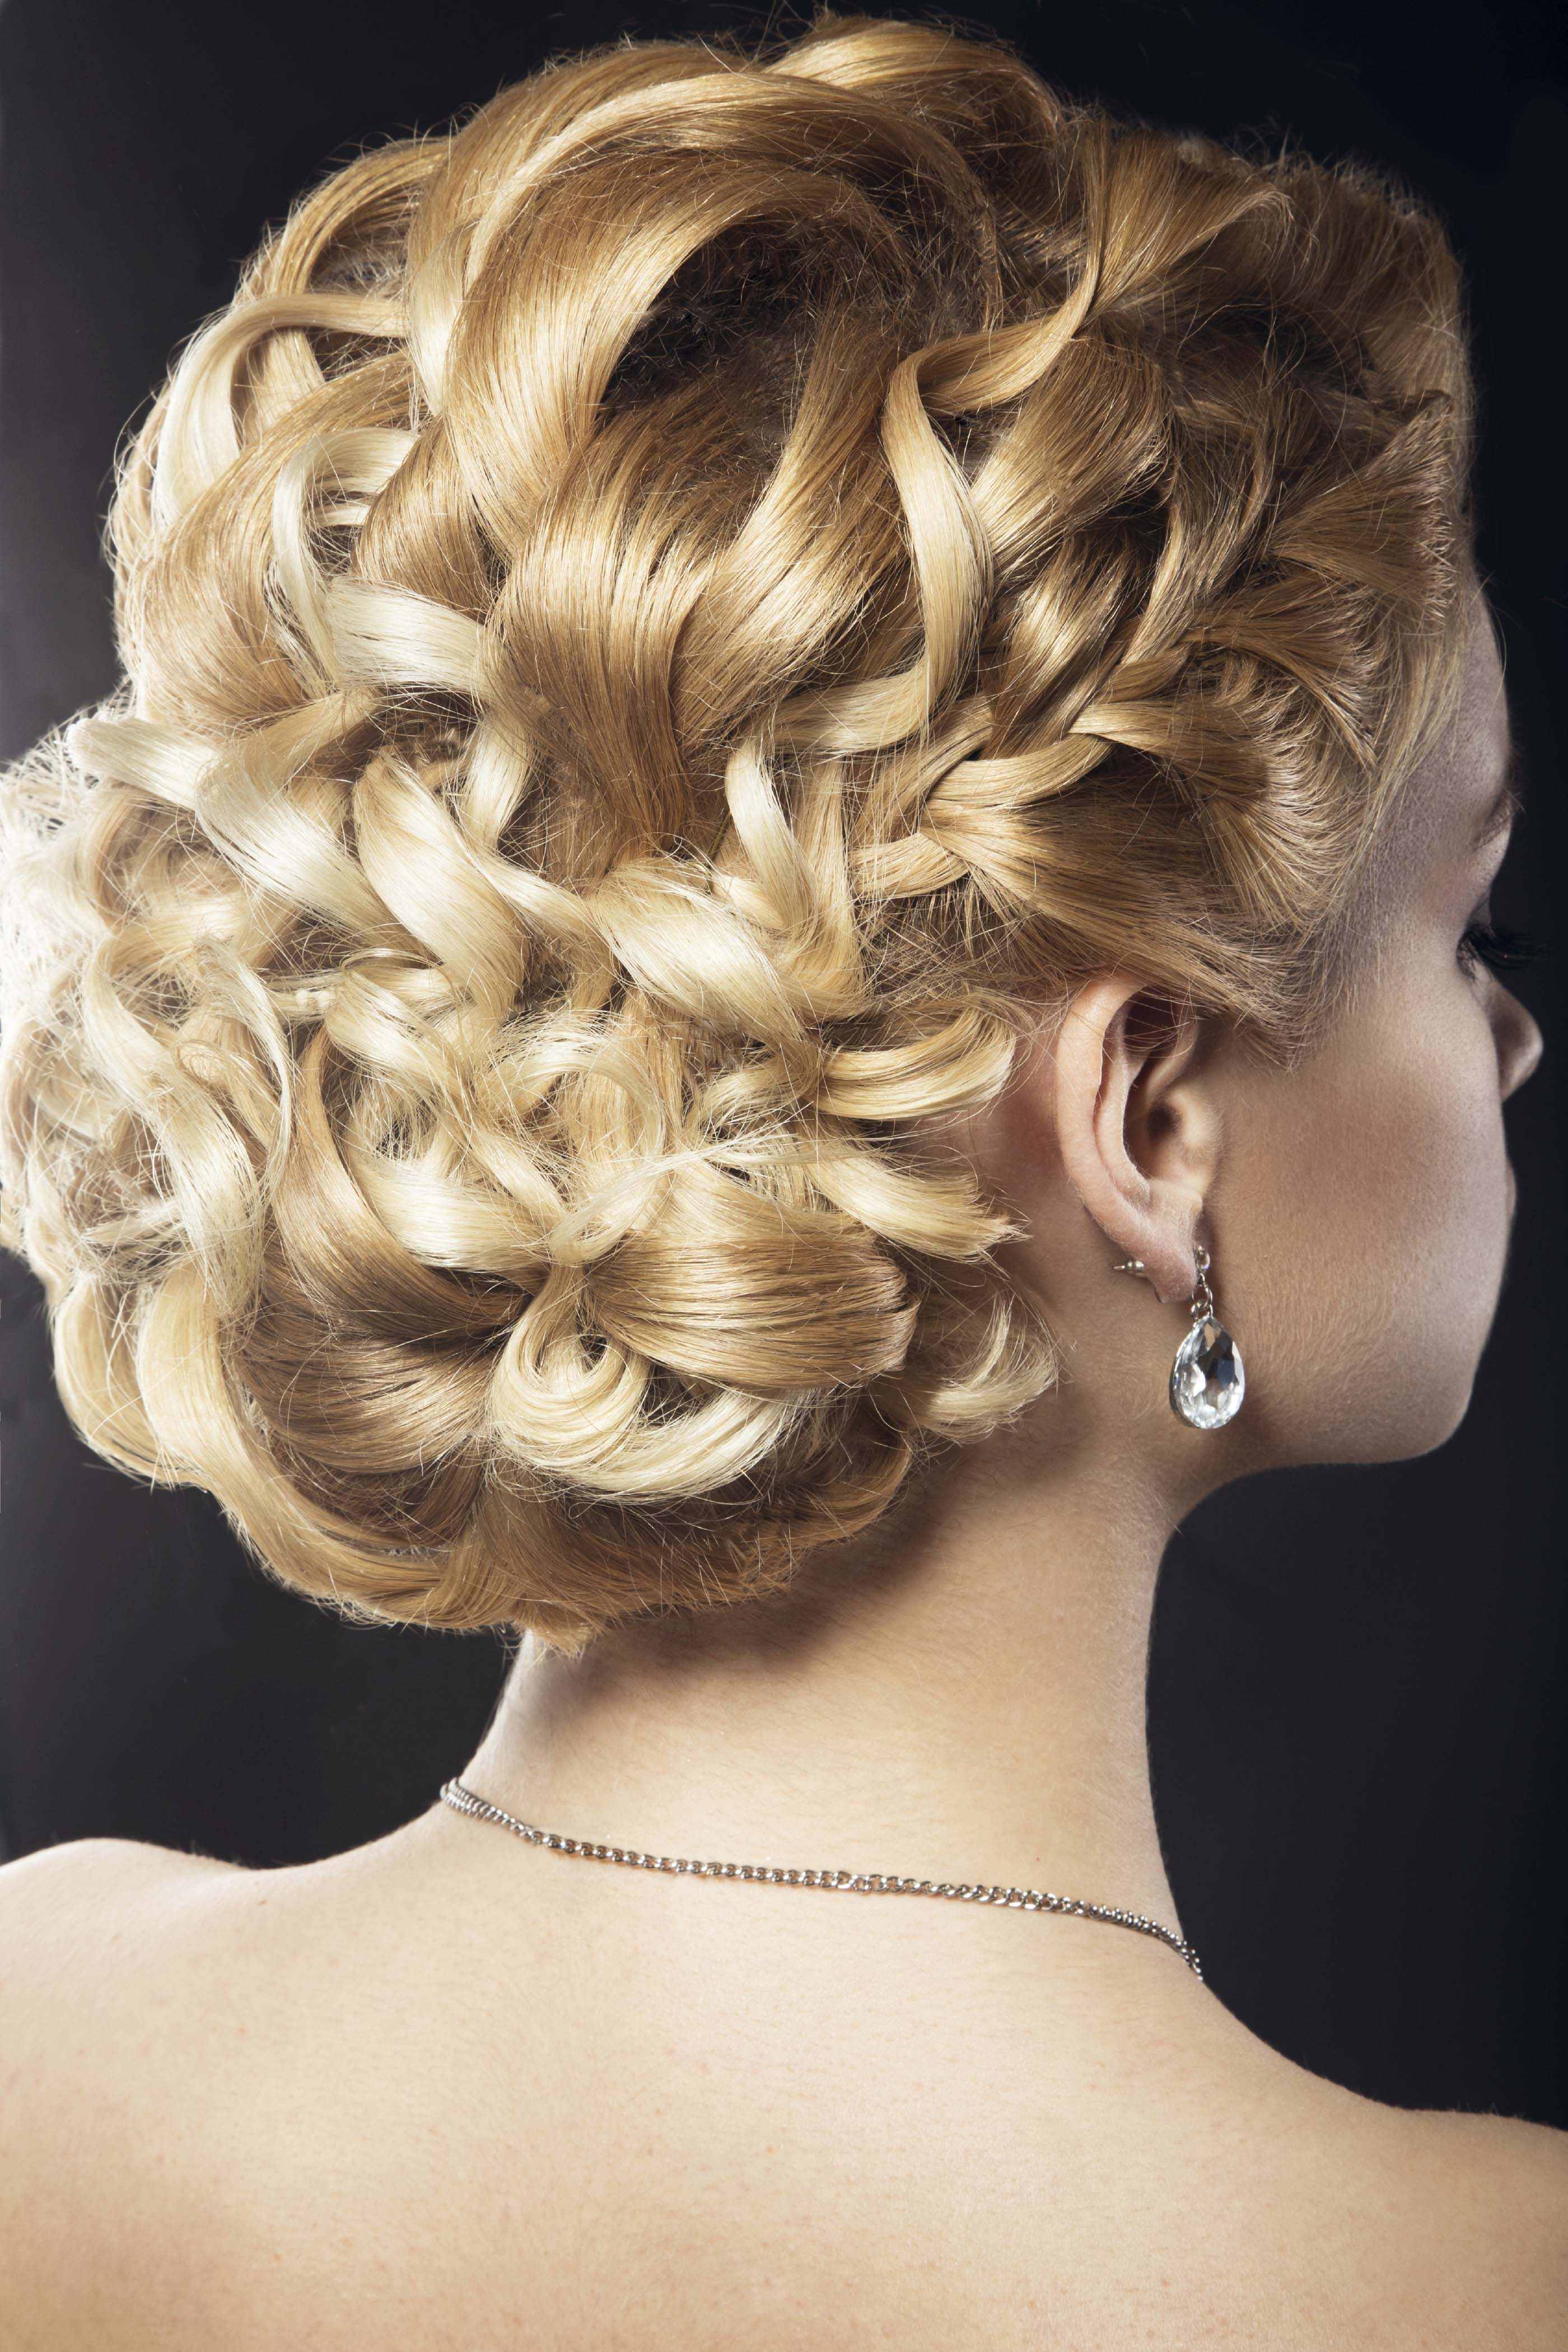 Wedding Updos For Curly Hair include loose romantic styles.